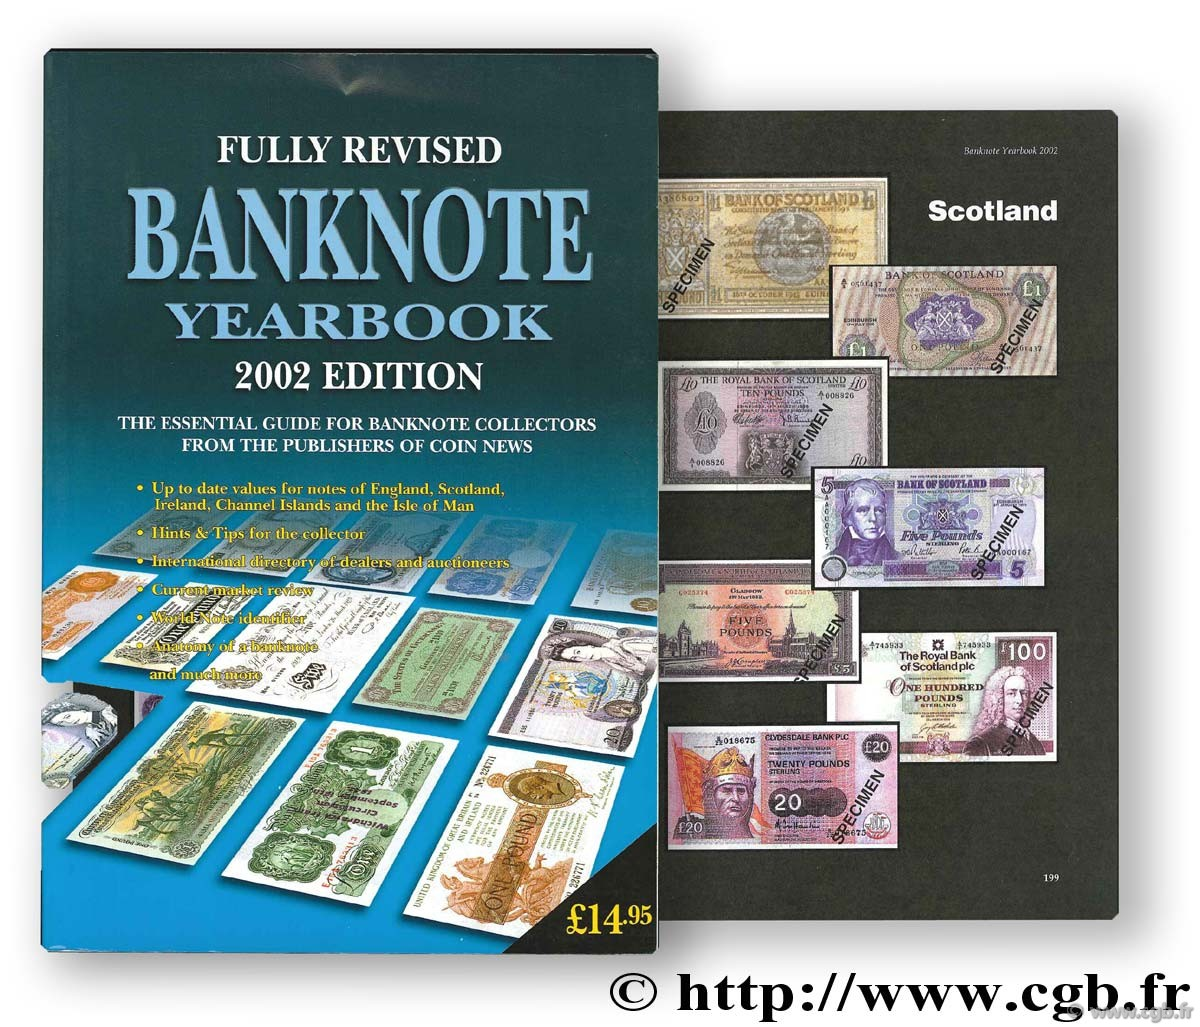 Banknote yearbook 2002. England, Scotland, Ireland, Channel Islands and the Isle of Man